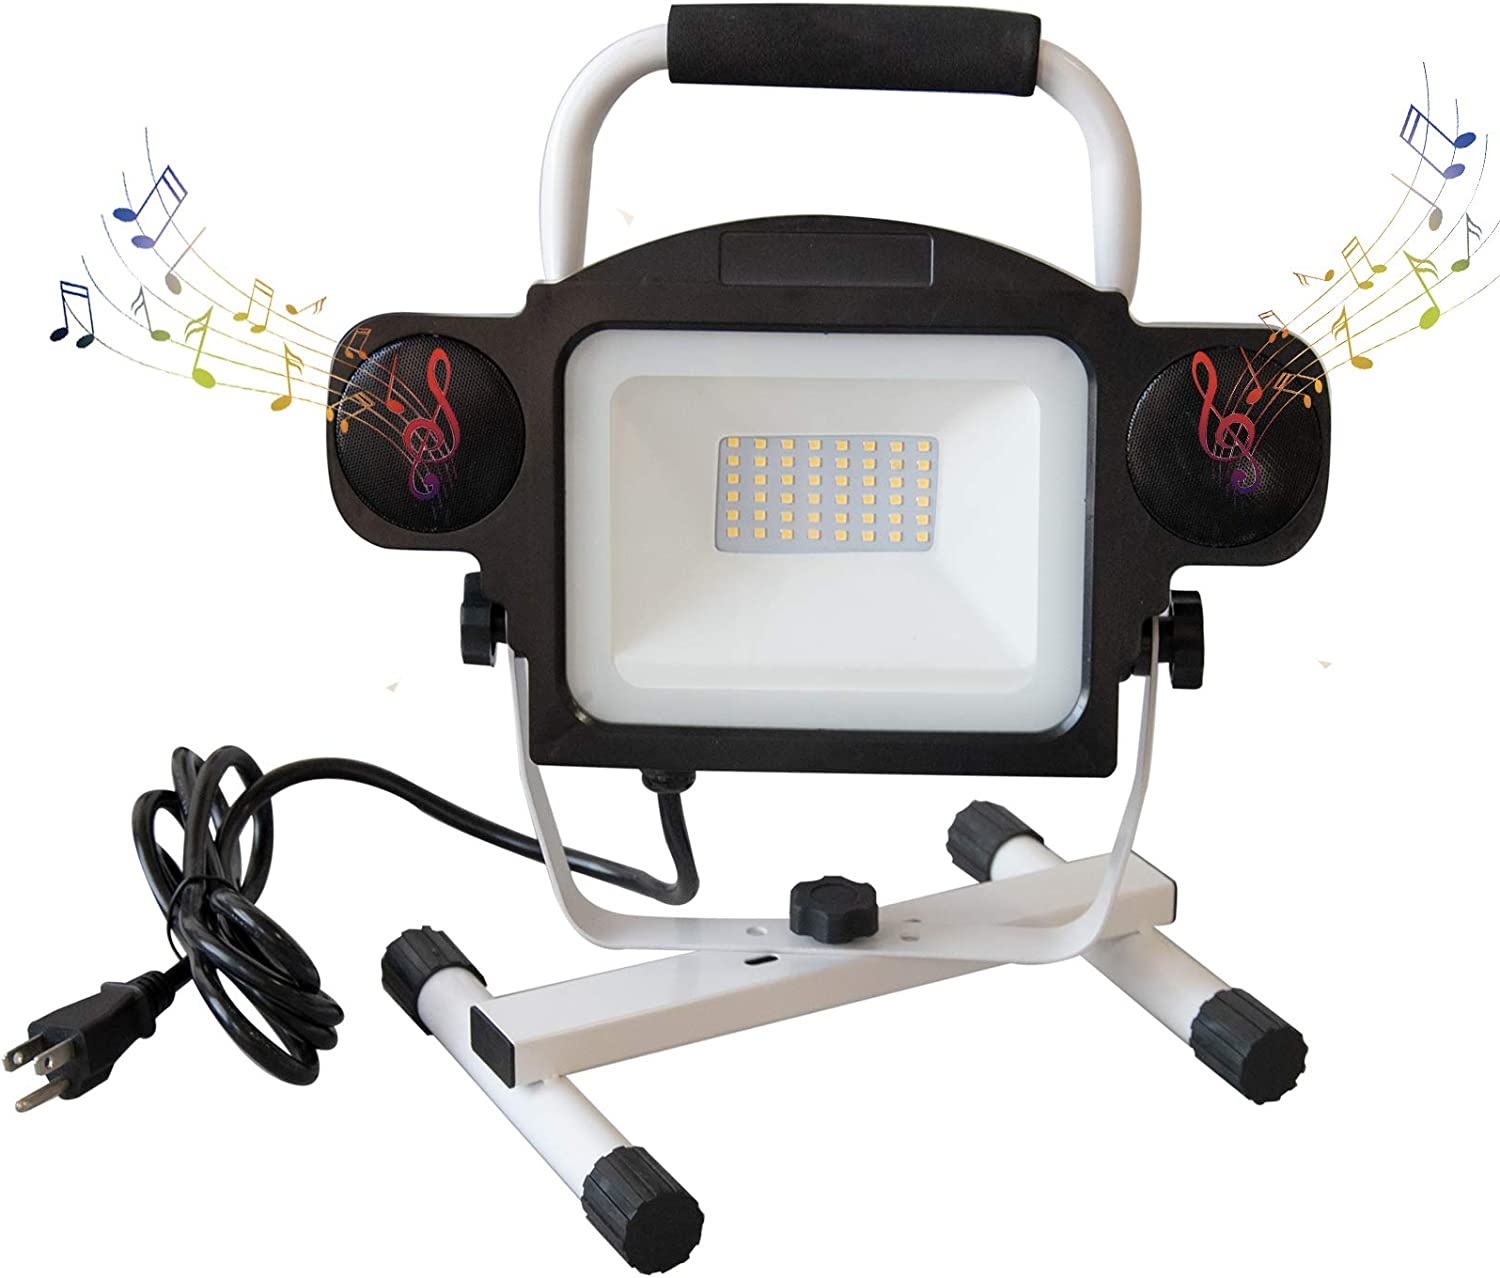 LED Work Light Portable 50W with Speaker Max 52% OFF Real 5000LM S Max 68% OFF Bluetooth